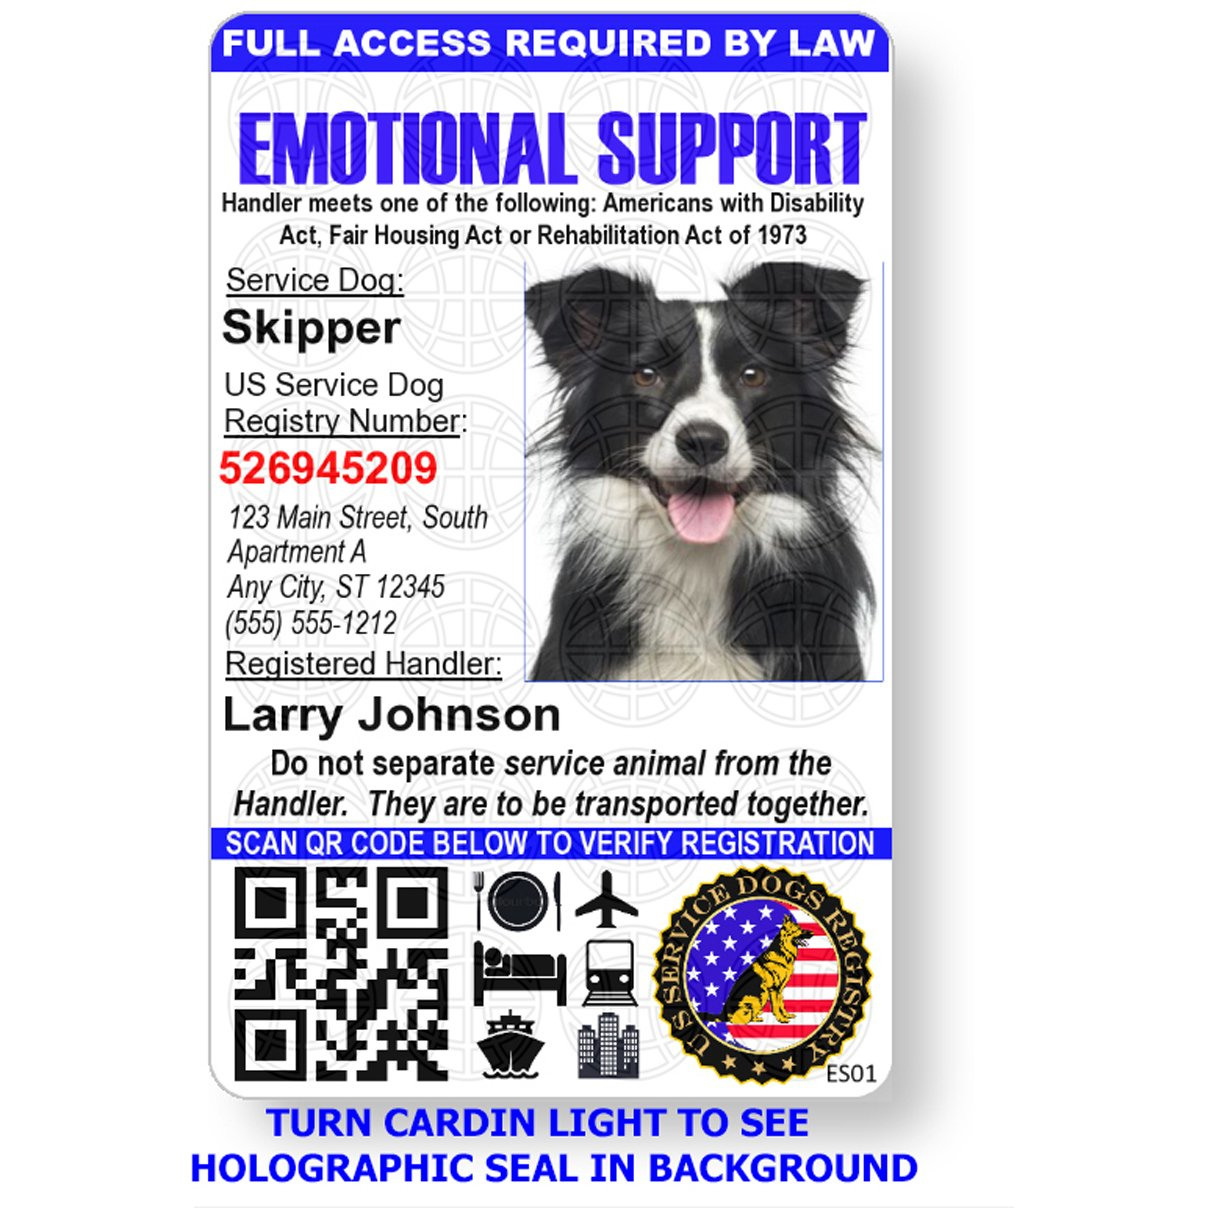 Just 4 Paws Custom Holographic QR Code Emotional Support Dog ID Card with Registration to Service Dogs Registry with Strap - Portrait Style by Just 4 Paws (Image #3)